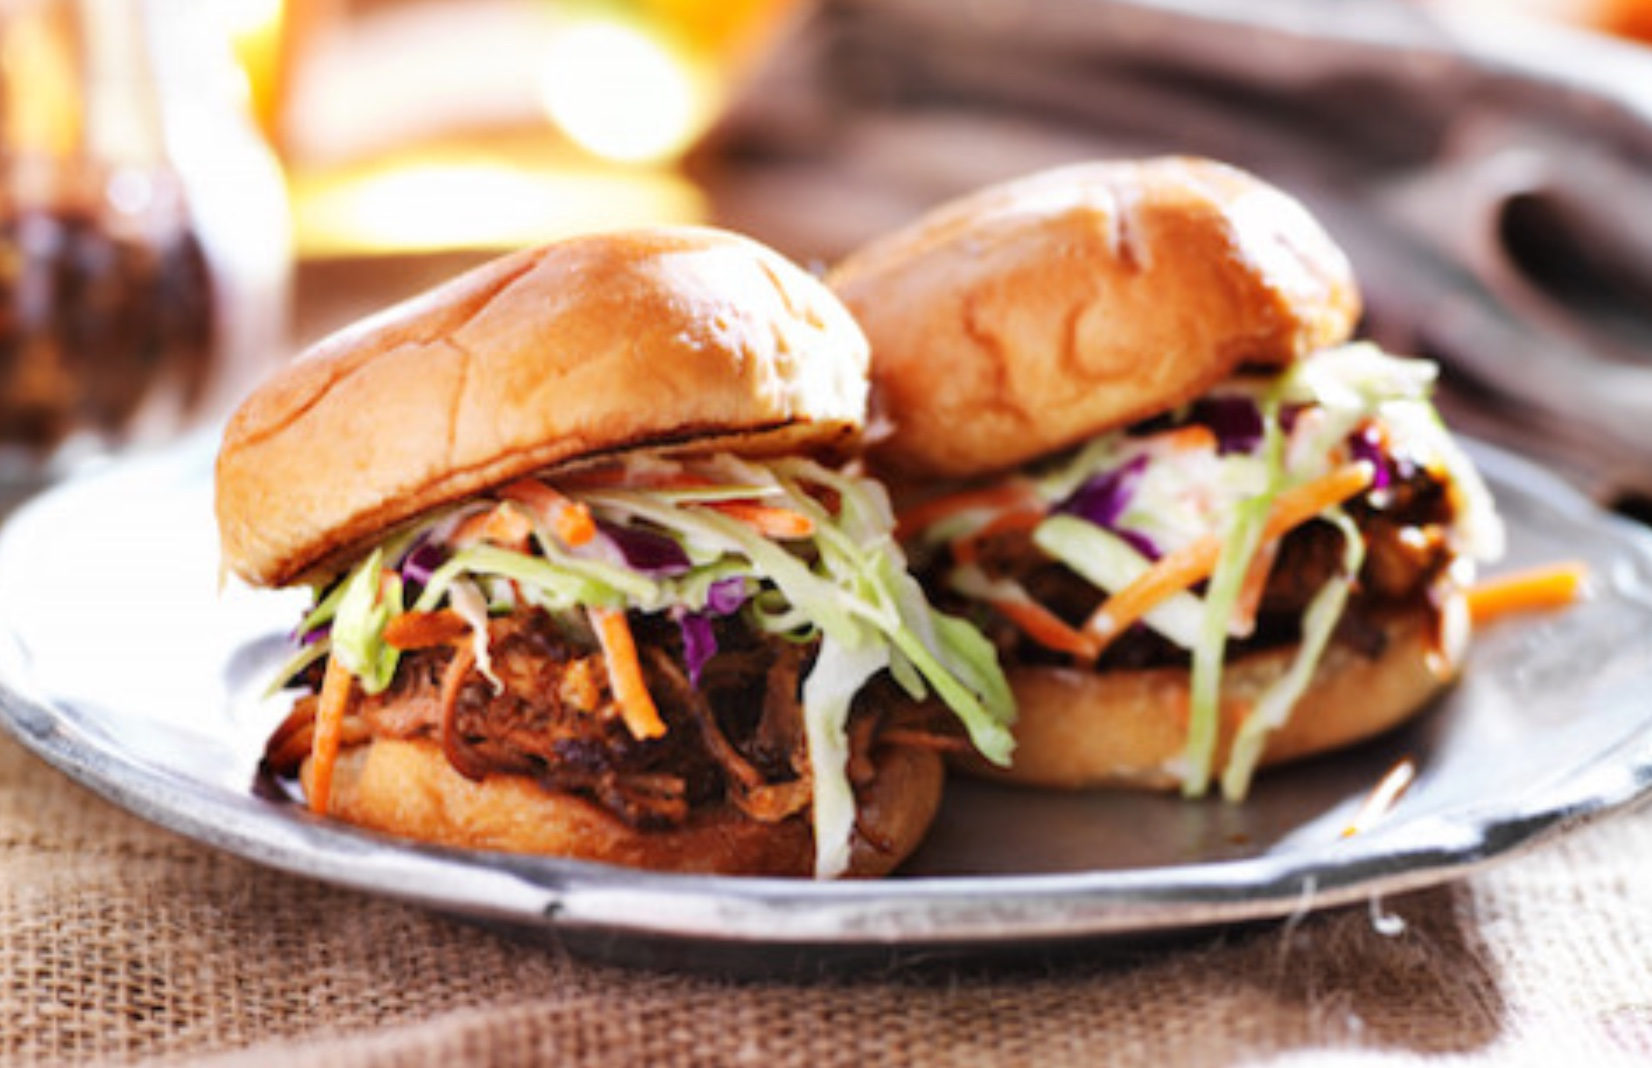 Pulled pork sliders